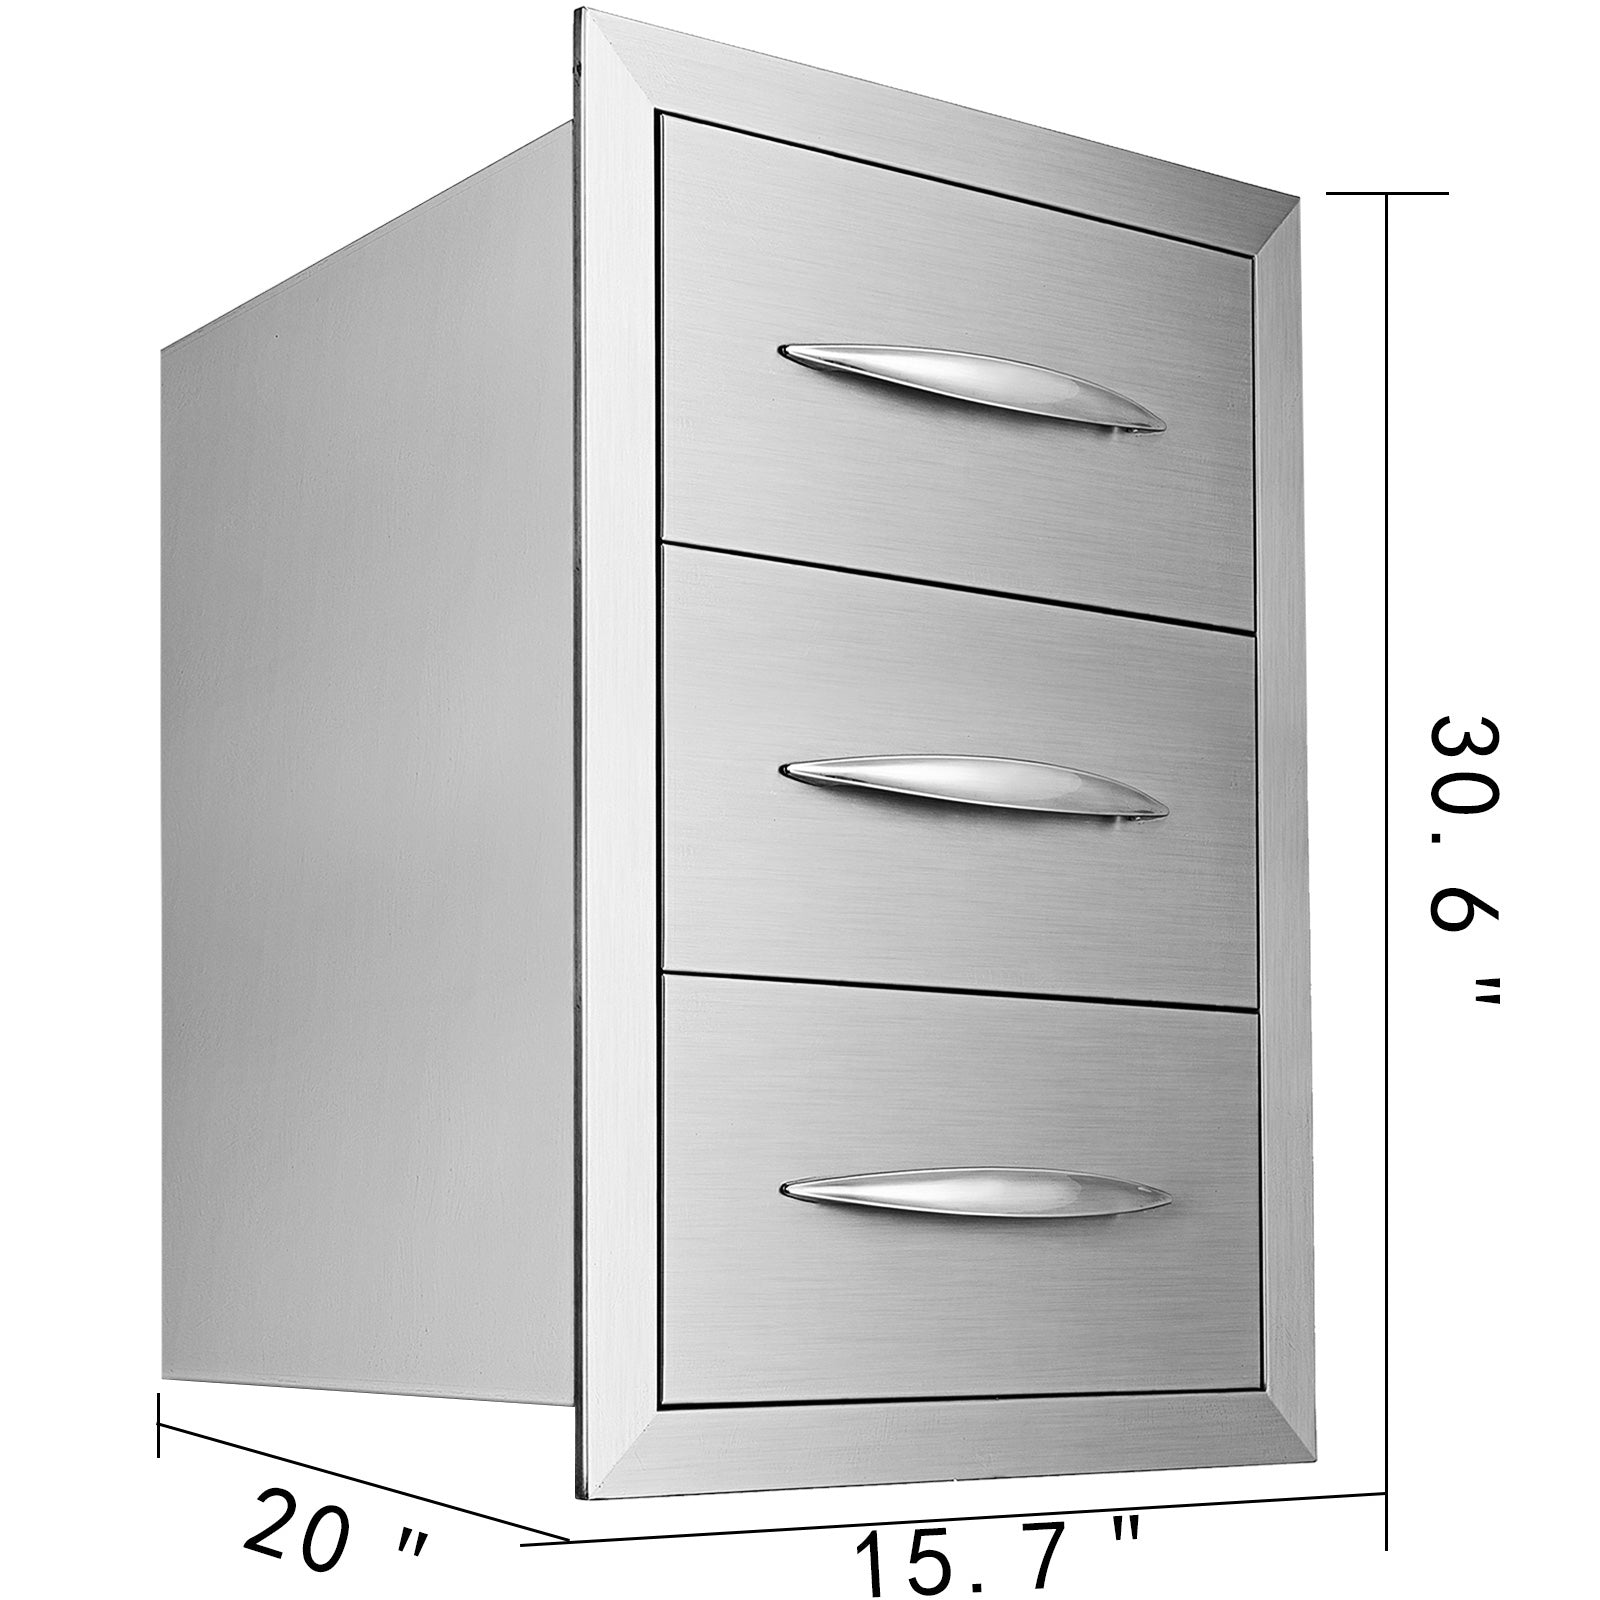 "15.7""x28.5"" Bbq Outdoor Kitchen Drawers Frame Storage Cabinet Access Drawers"